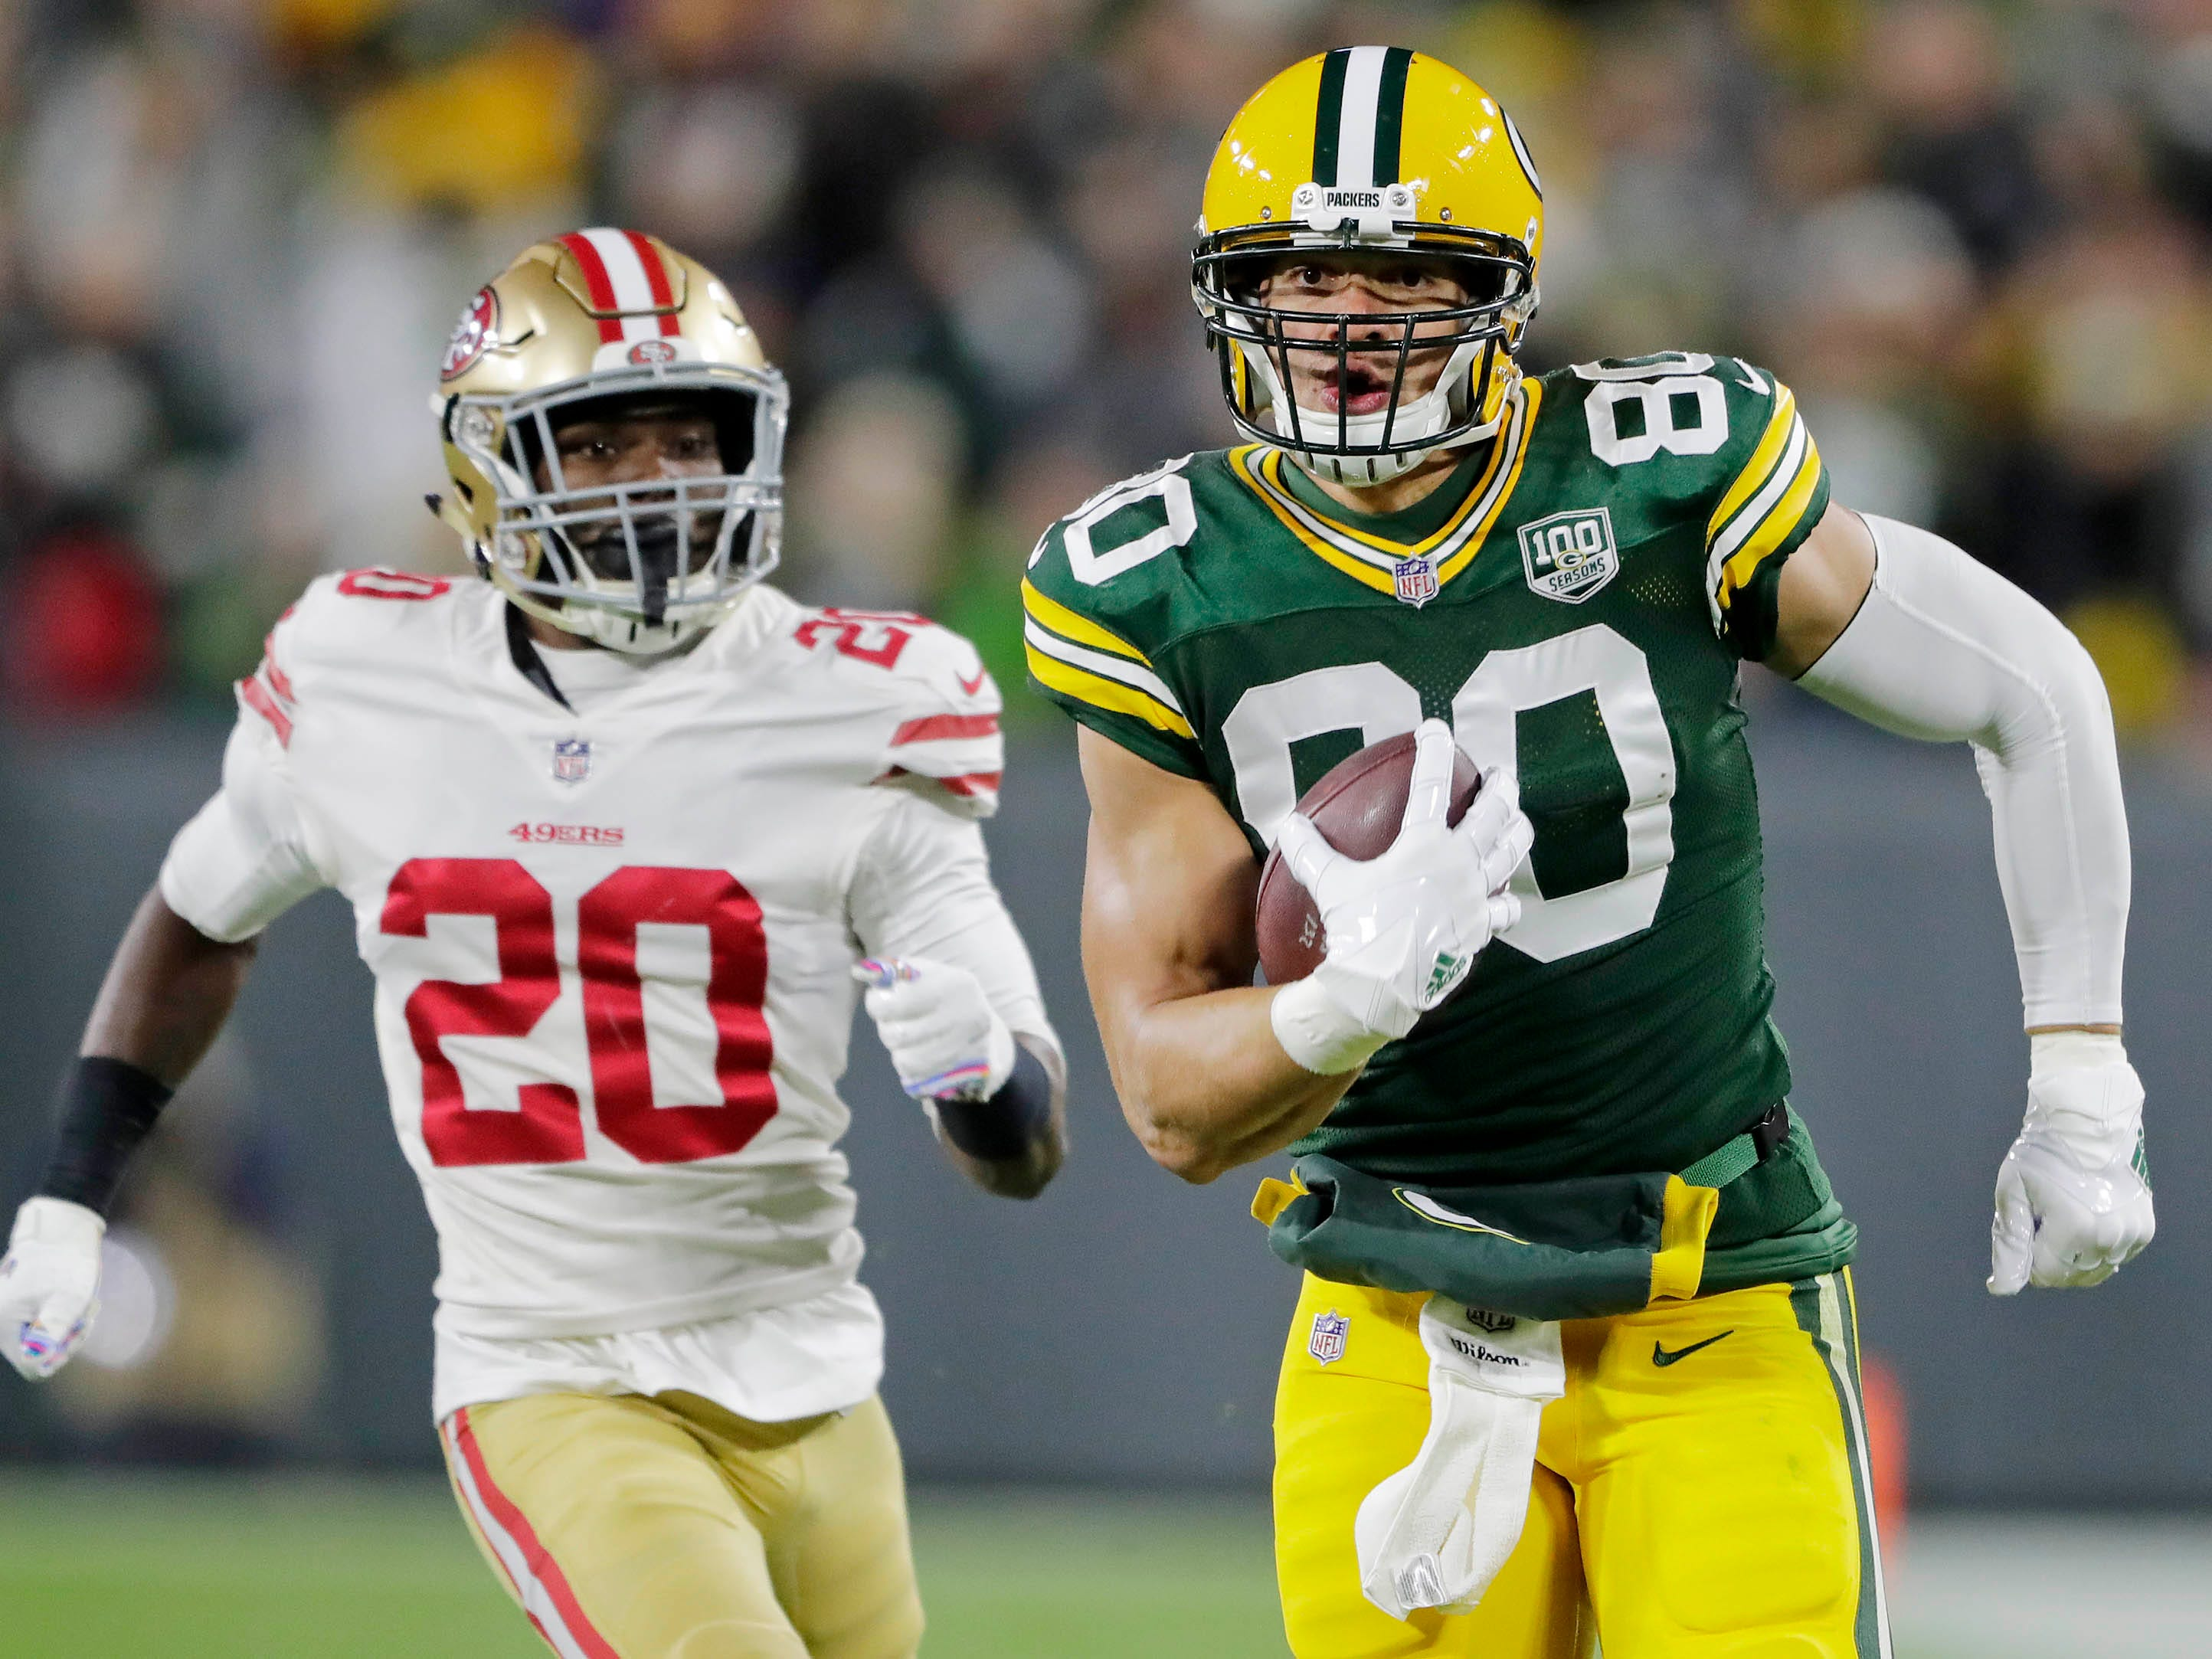 Green Bay Packers tight end Jimmy Graham runs after a catch against the San Francisco 49ers in the first quarter  at Lambeau Field.